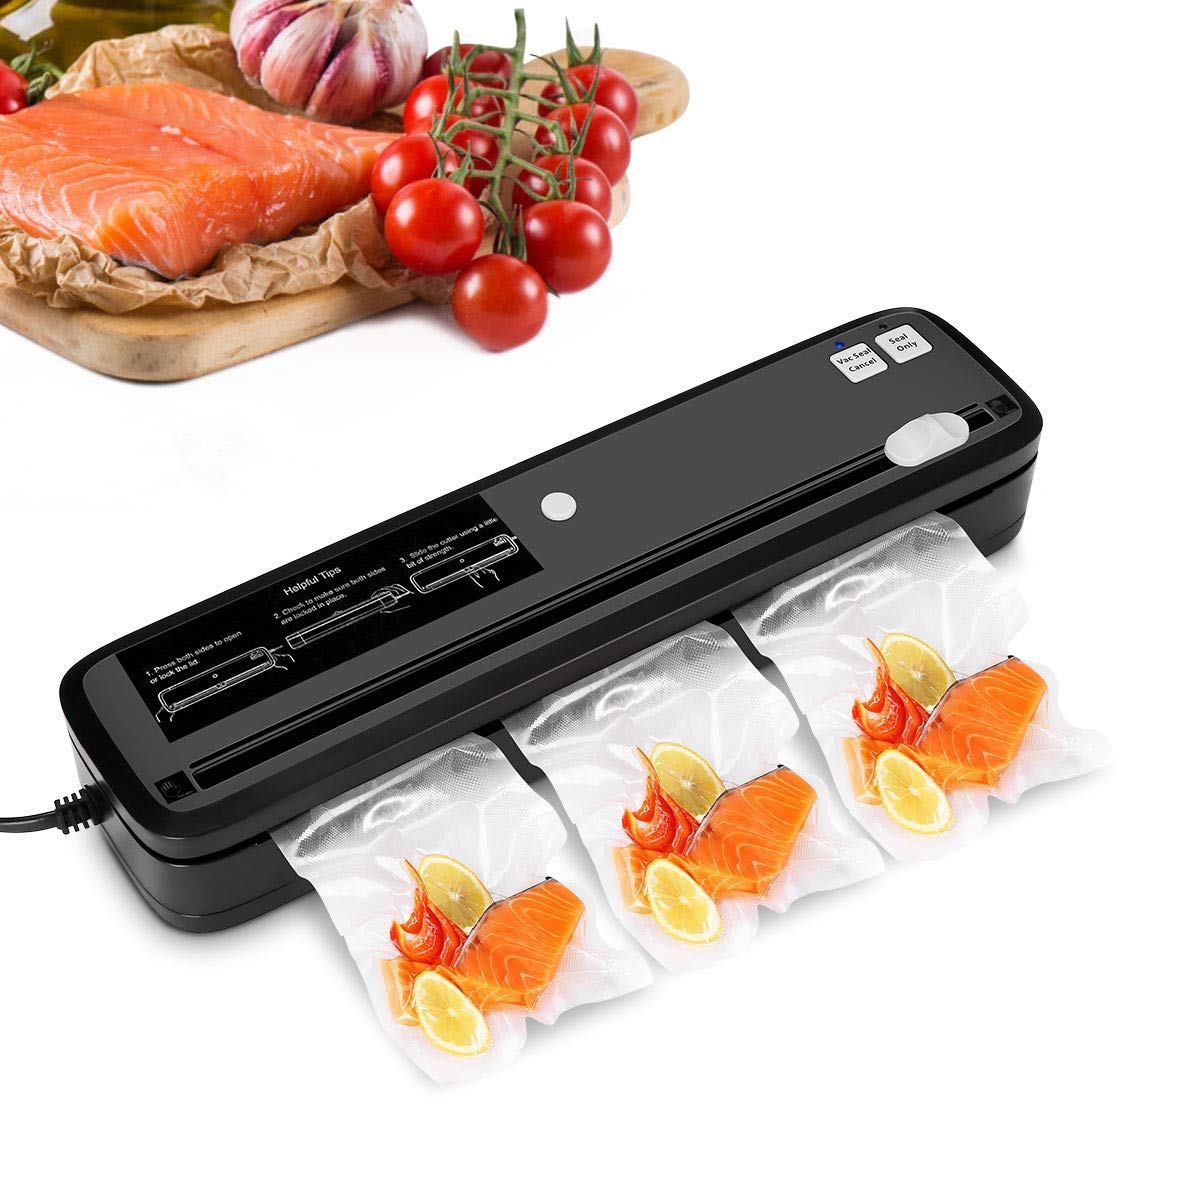 Vacuum Sealer, CUSIBOX Automatic Vacuum Sealing Machine with Cutter for Food Saver and Sous Vide, 3pcs Vacuum Sealer Bags(Black) by CUSIBOX